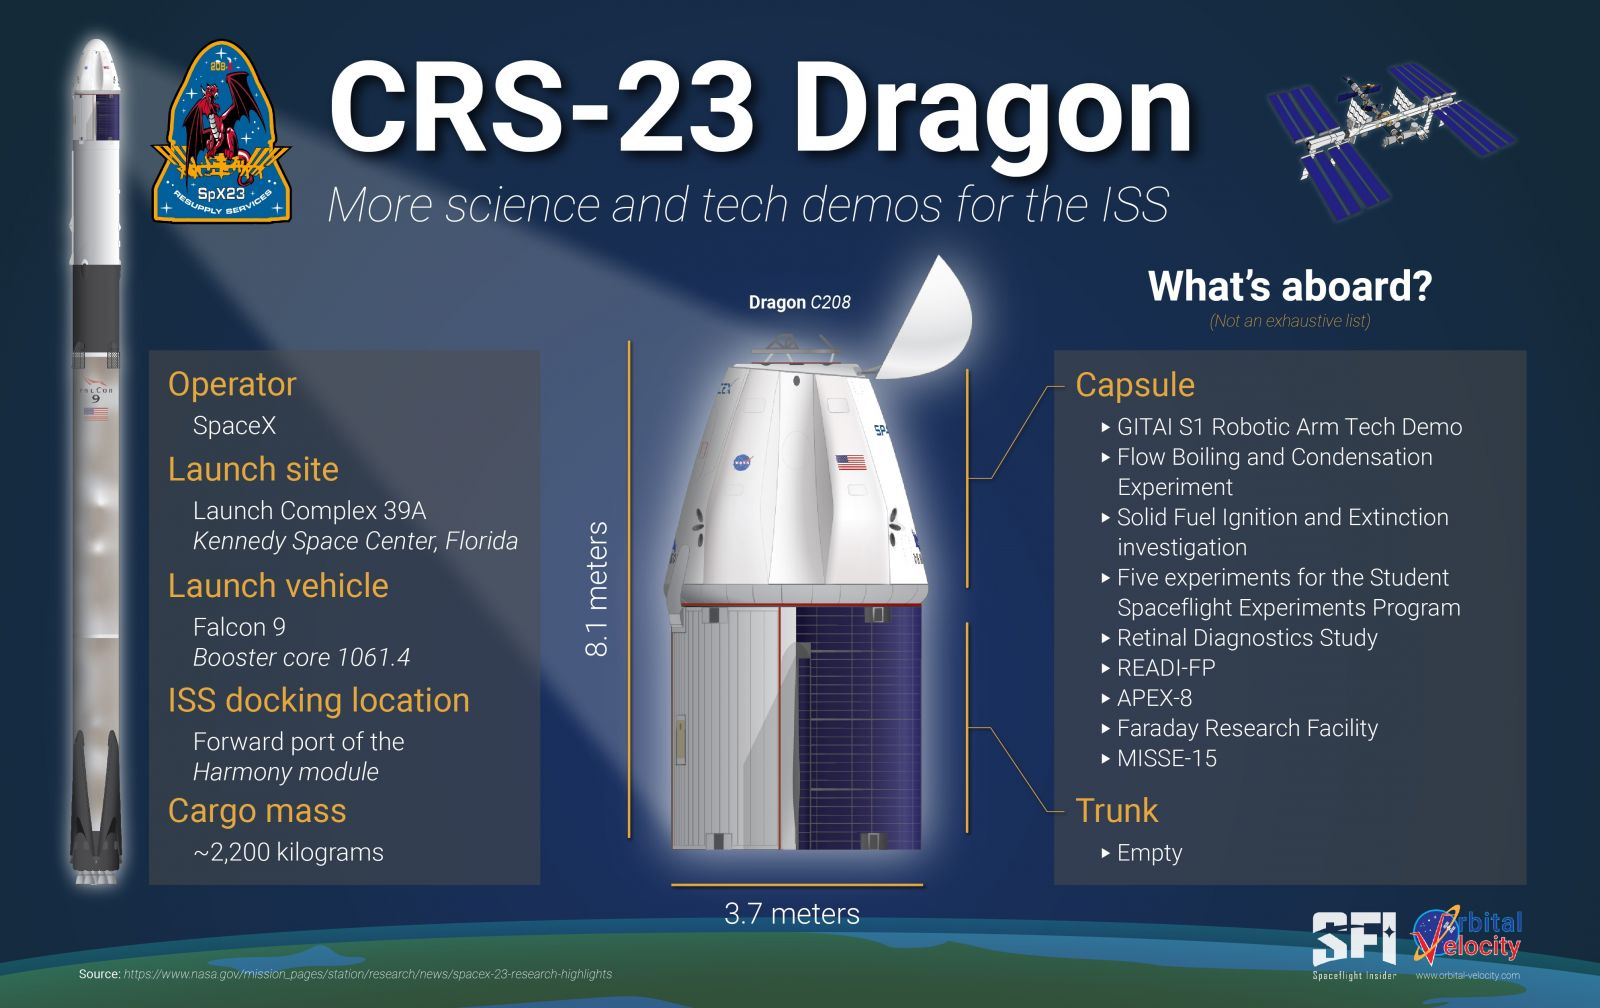 An overview of the cargo in CRS-23 being sent to the ISS. Credit: Derek Richardson / Spaceflight Insider / Orbital Velocity